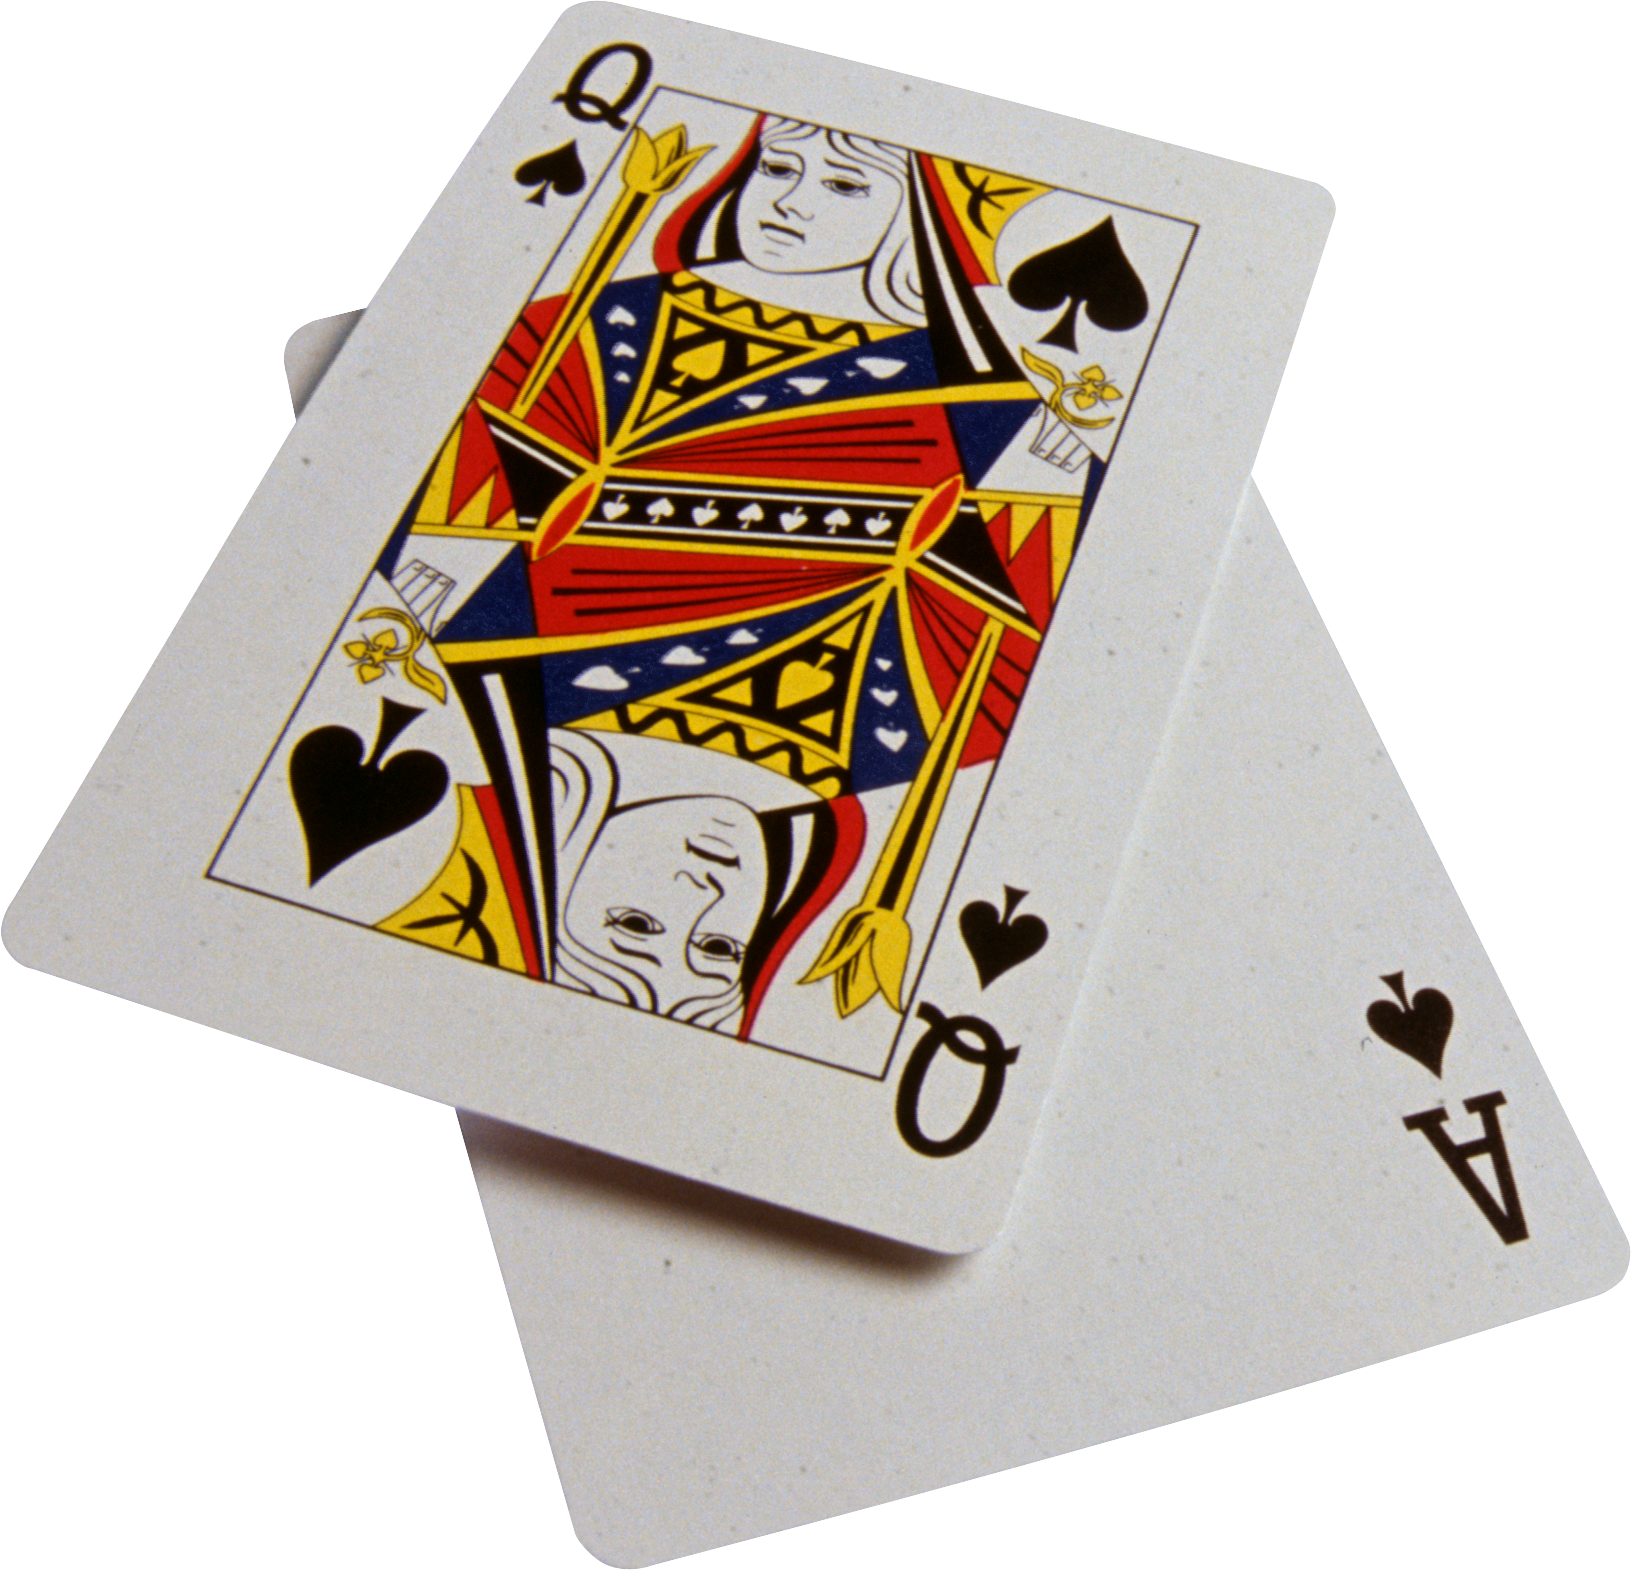 Deck of cards png. Web icons best free